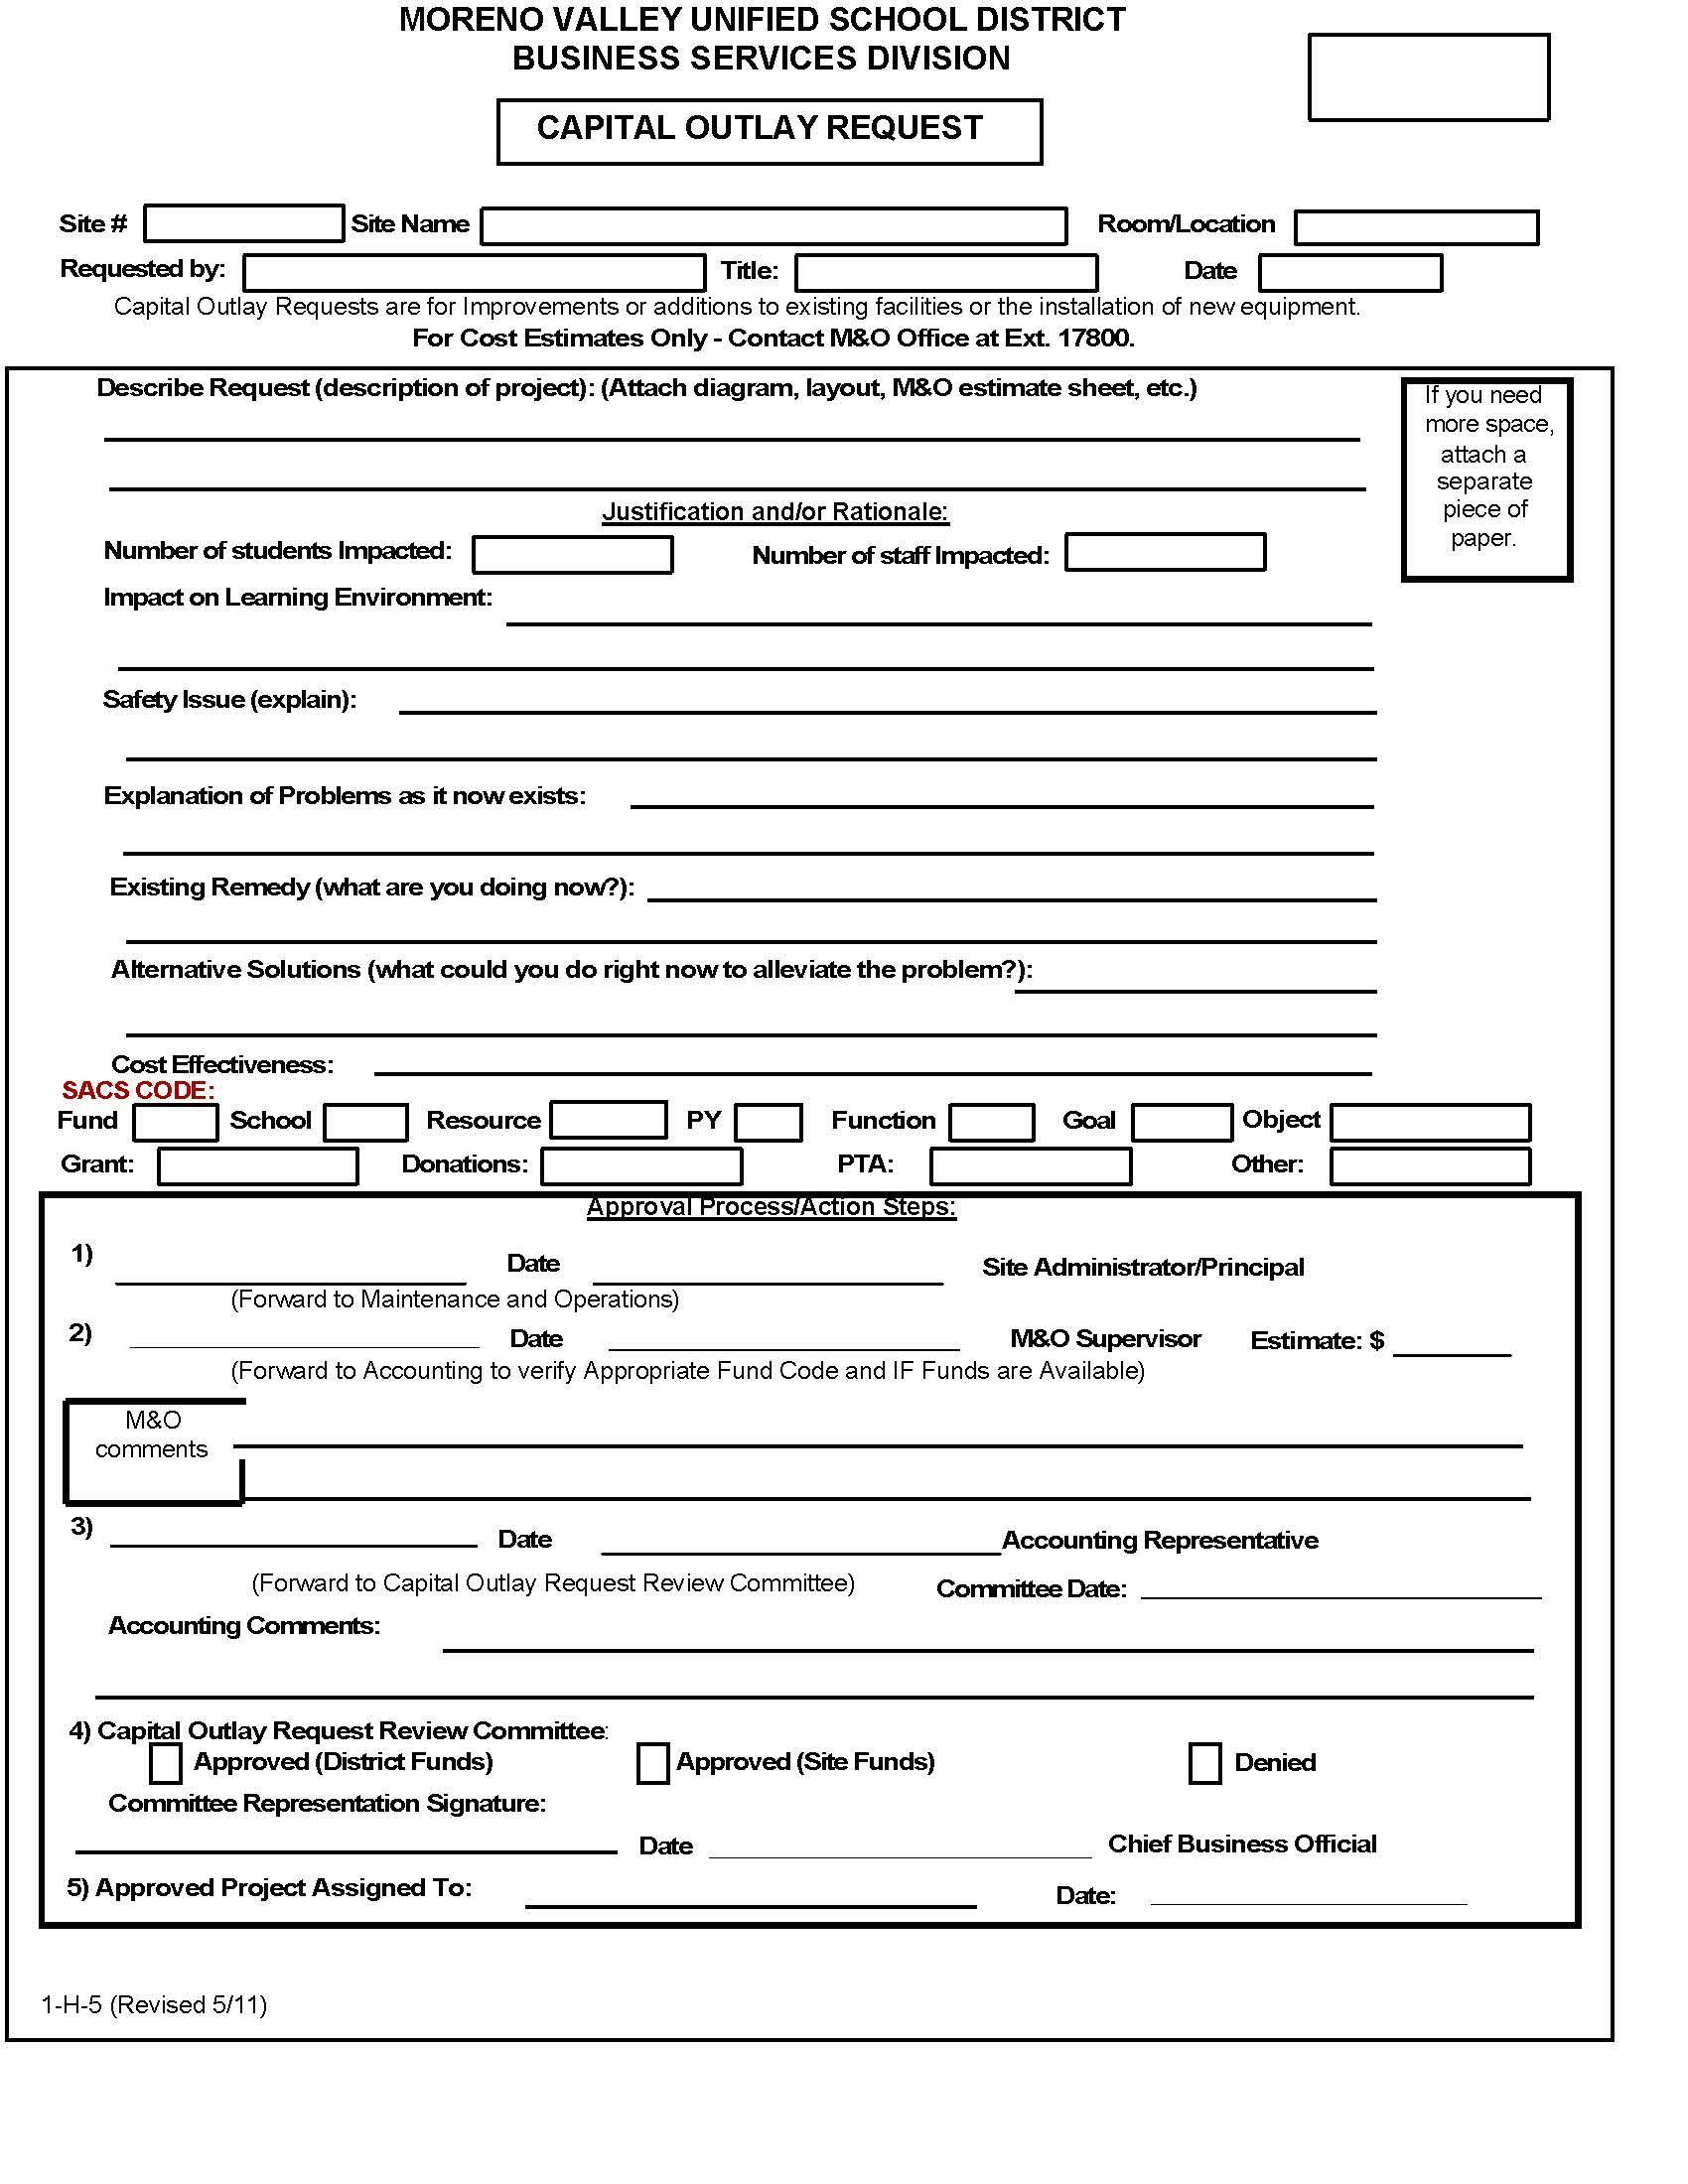 Image of Capital Outlay Form